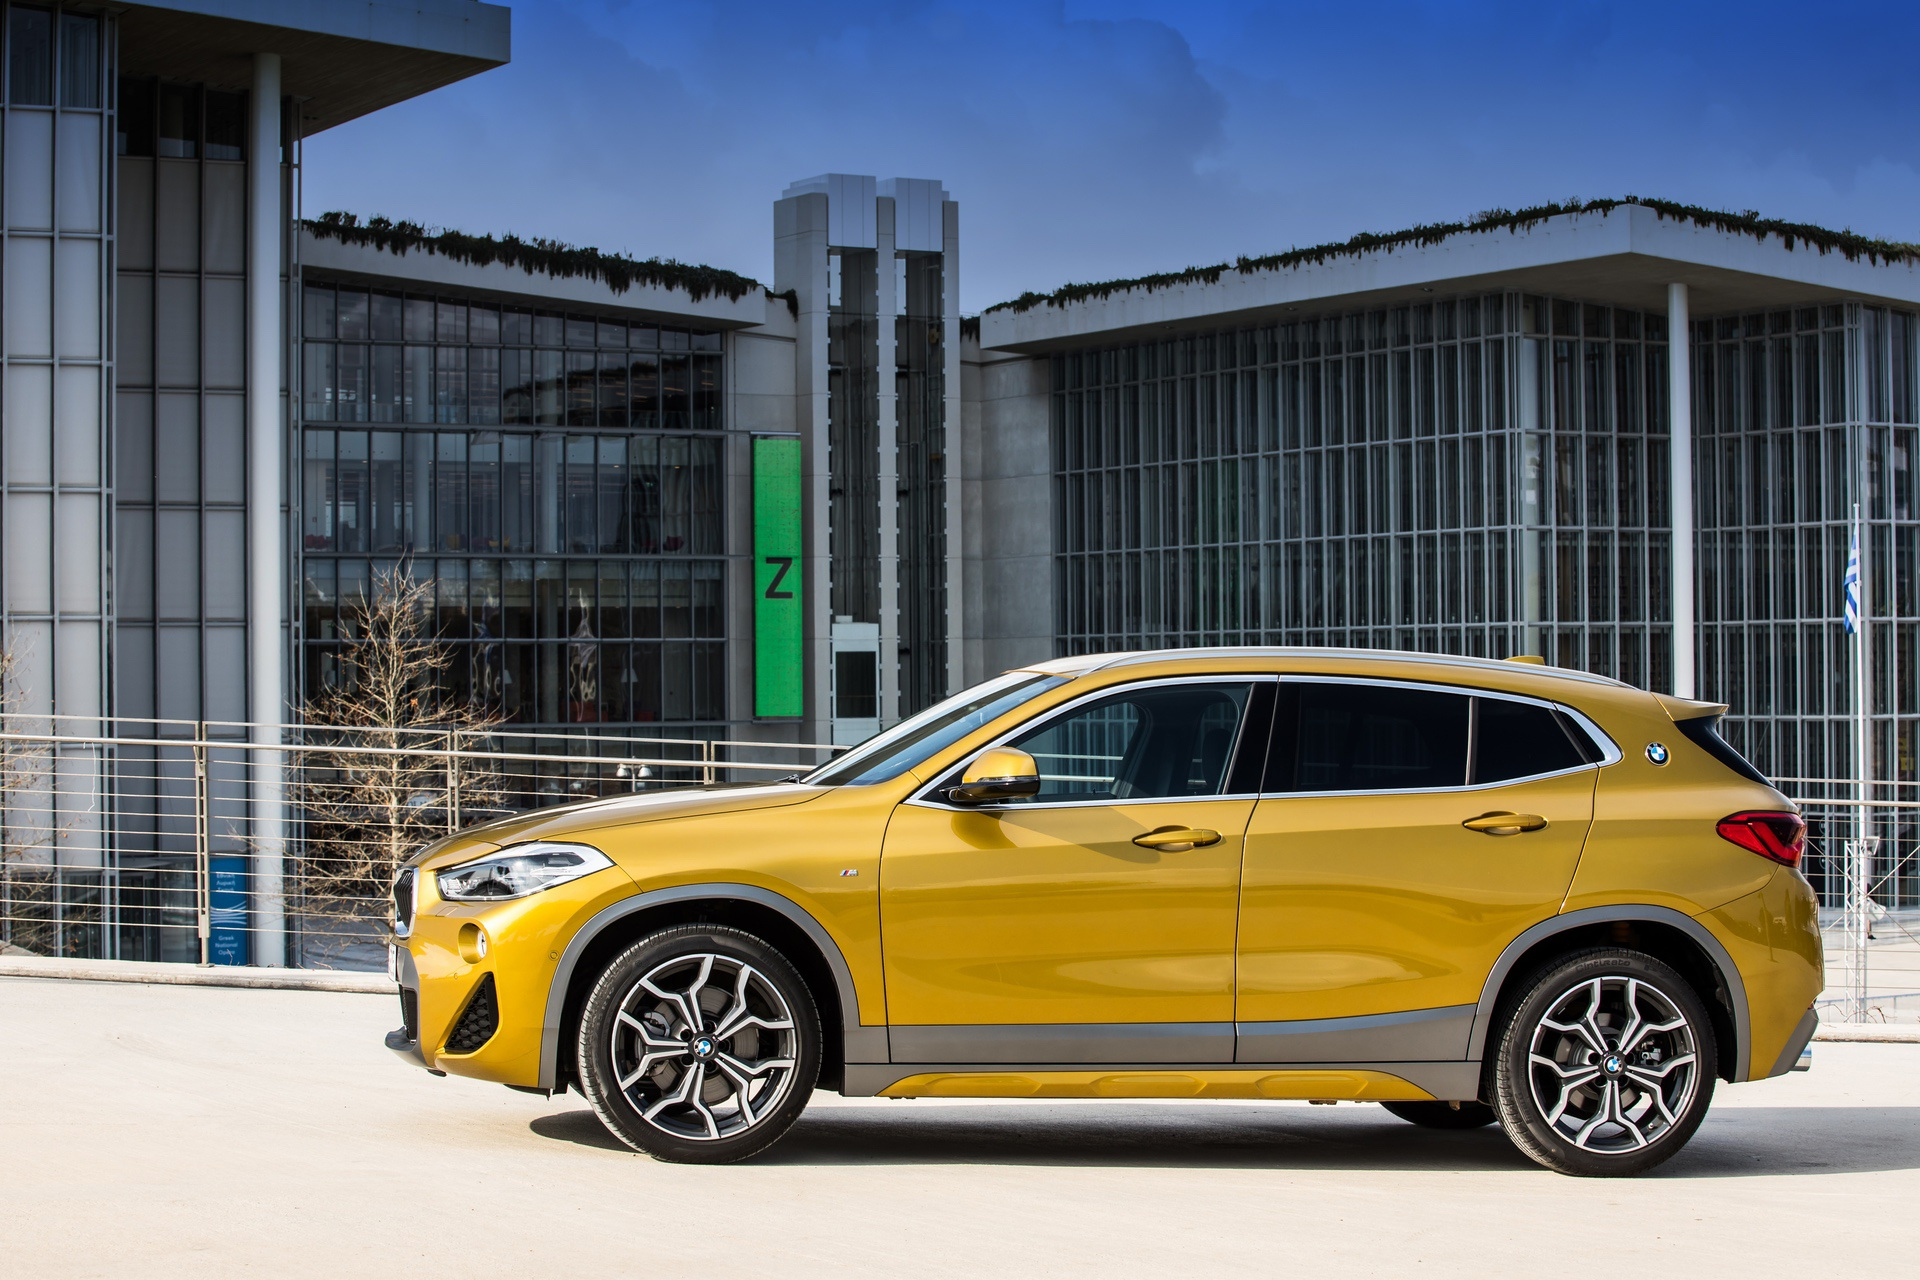 BMW_X2_Greek_presskit_0064